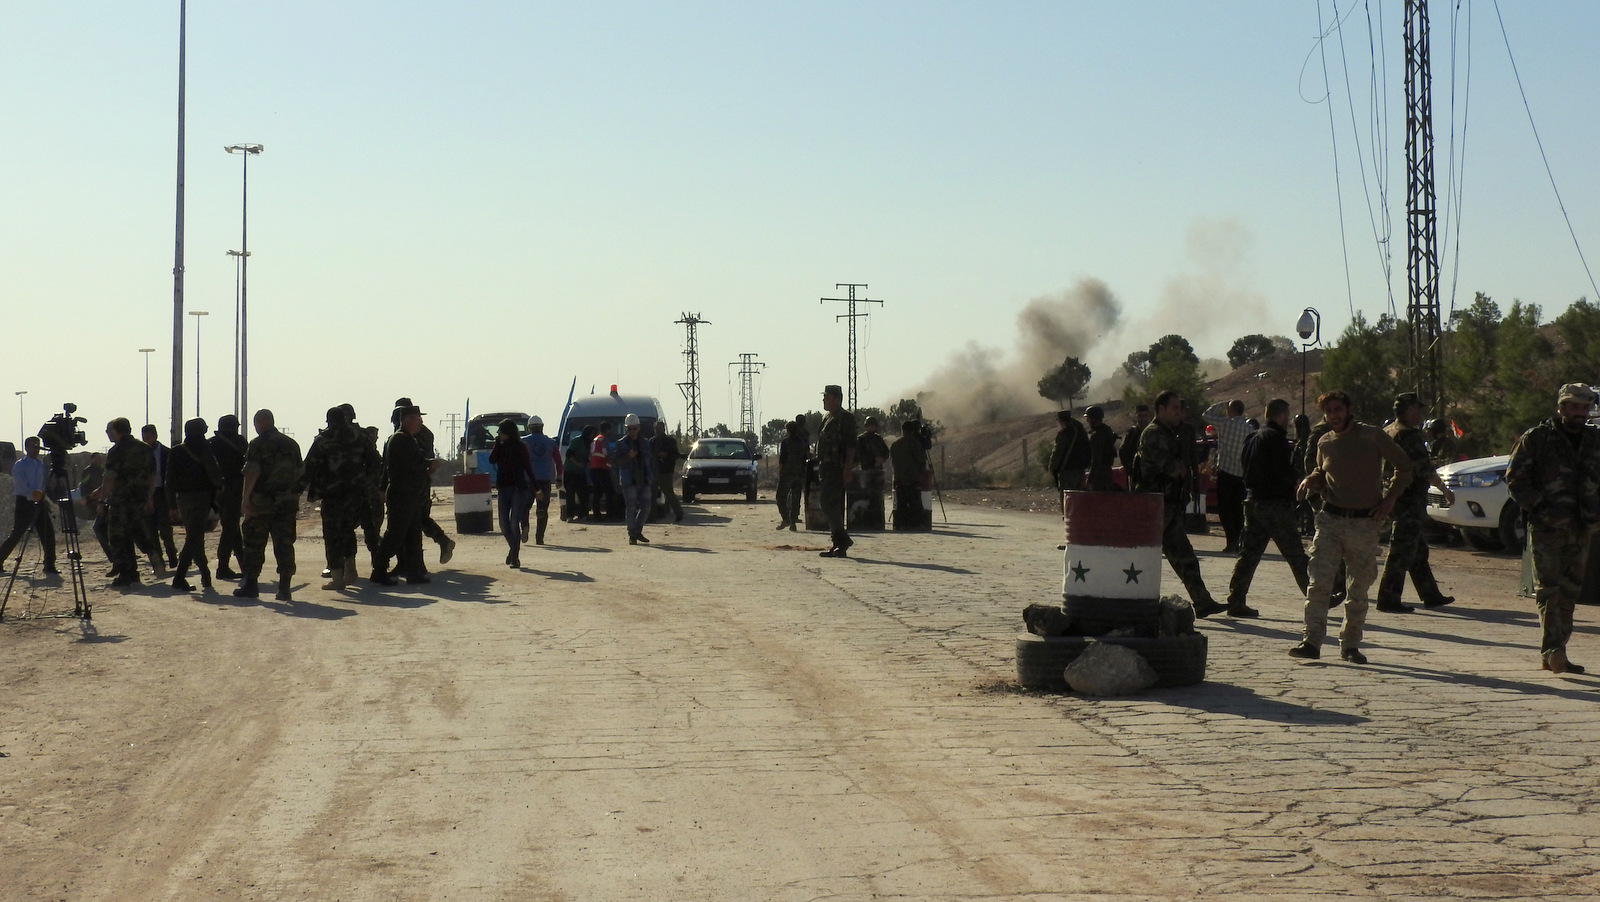 Less than 100 metres away, the second of two mortars fired by terrorist factions less than 1 km from Castello Road on Nov. 4. The road and humanitarian corridor were targeted at least six times that day by terrorist factions. Nov. 4, 2016. (Photo: Eva Bartlett)